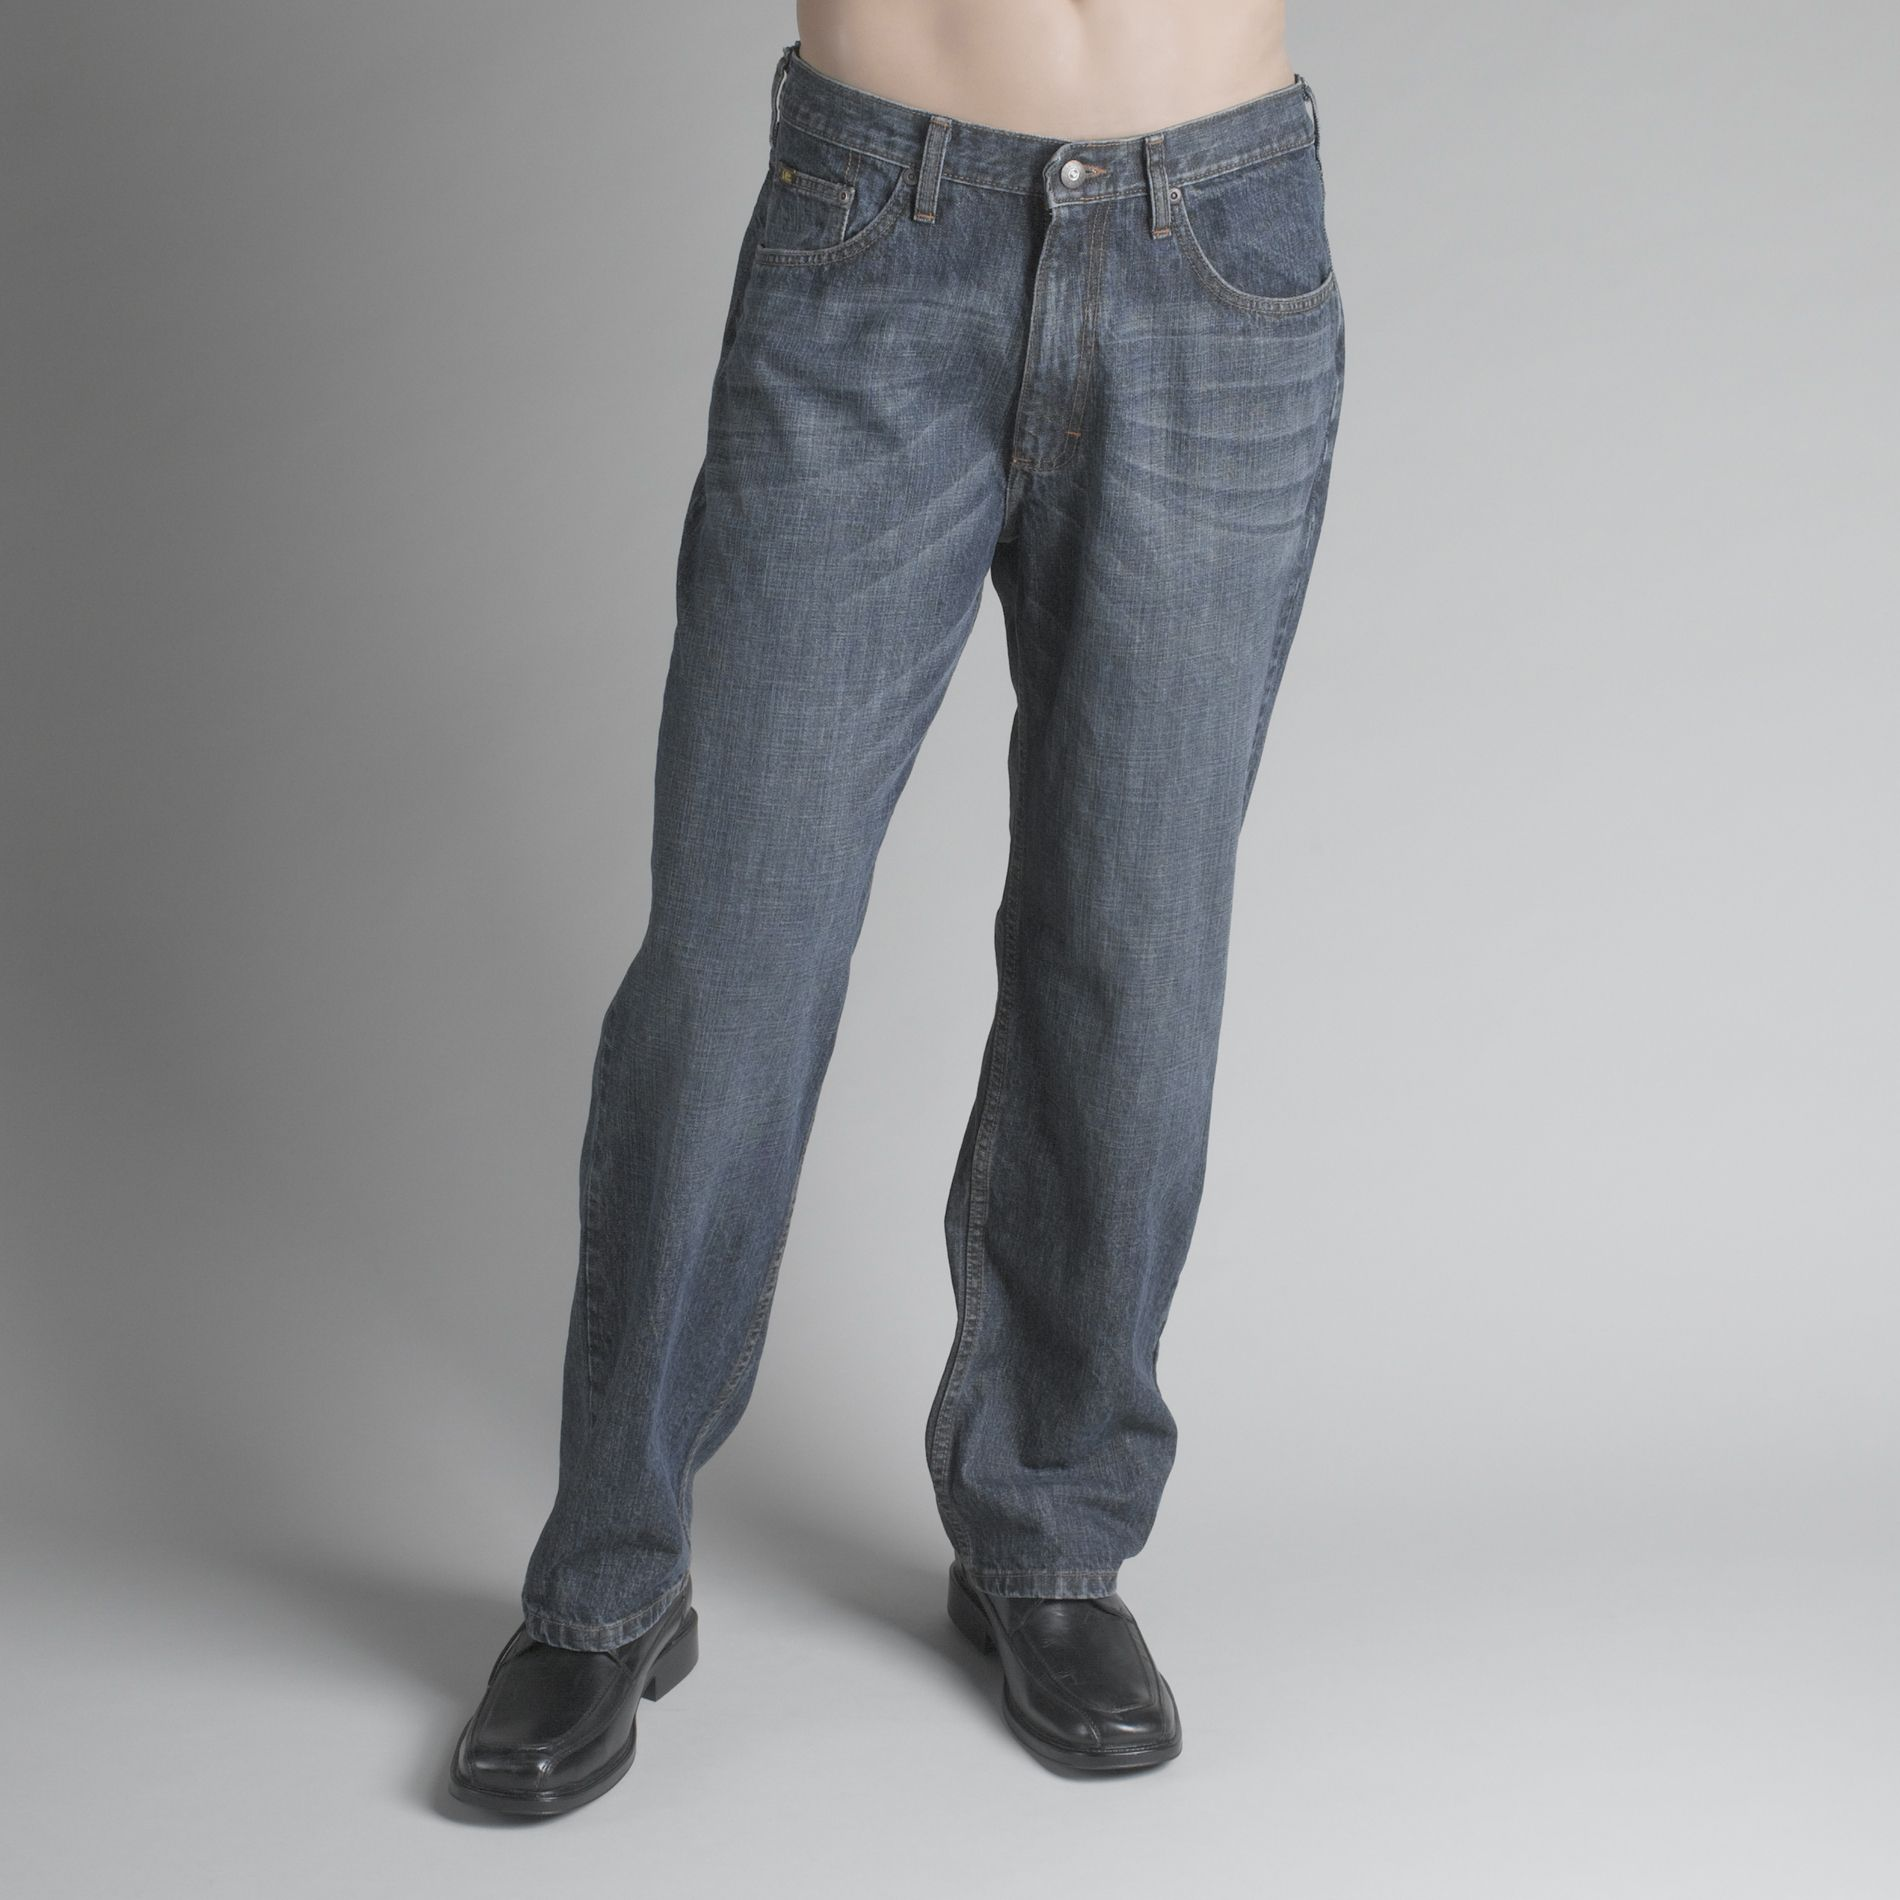 Men's Relaxed Straight Leg Jeans